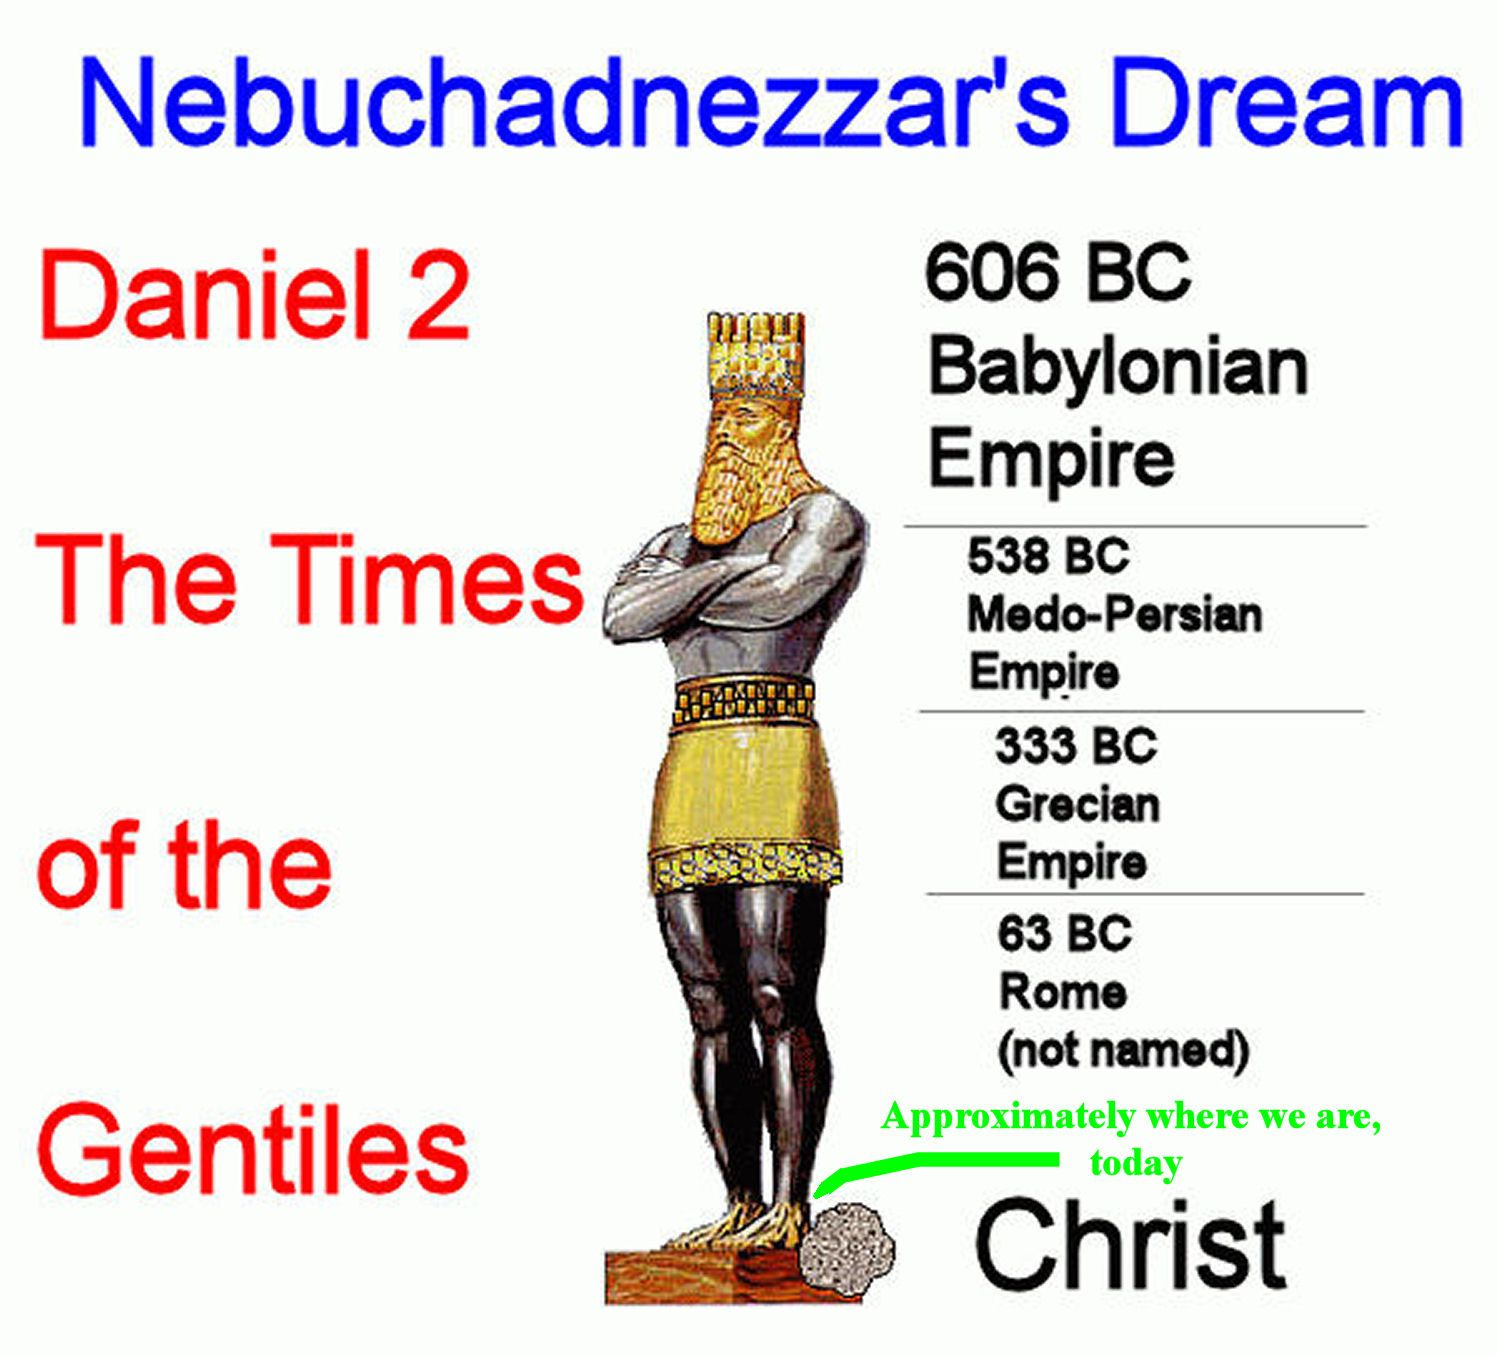 Image Of The Statue In King Nebuchadnezzars Dream